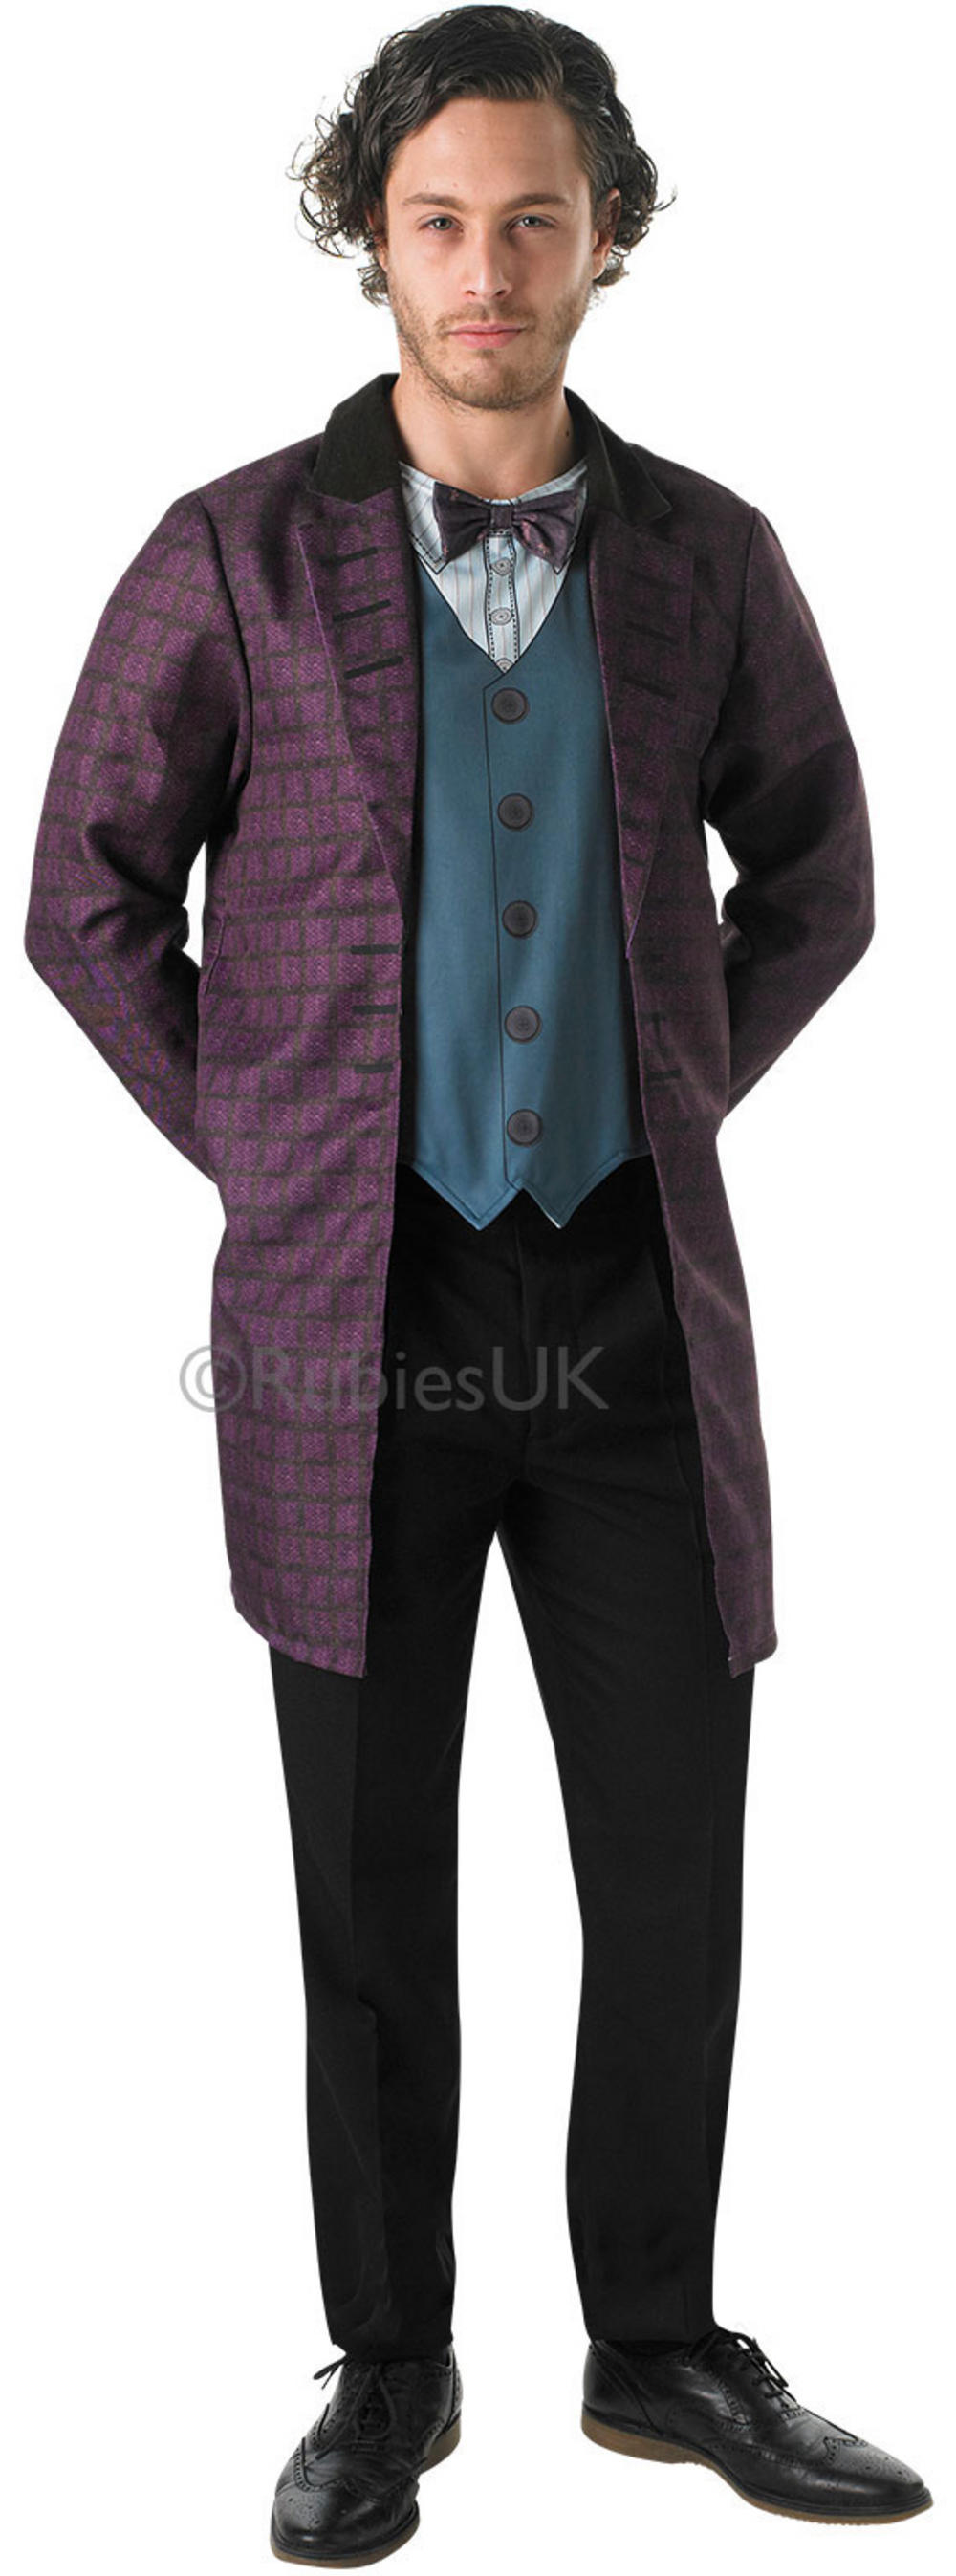 11th Doctor Who Mens Costume